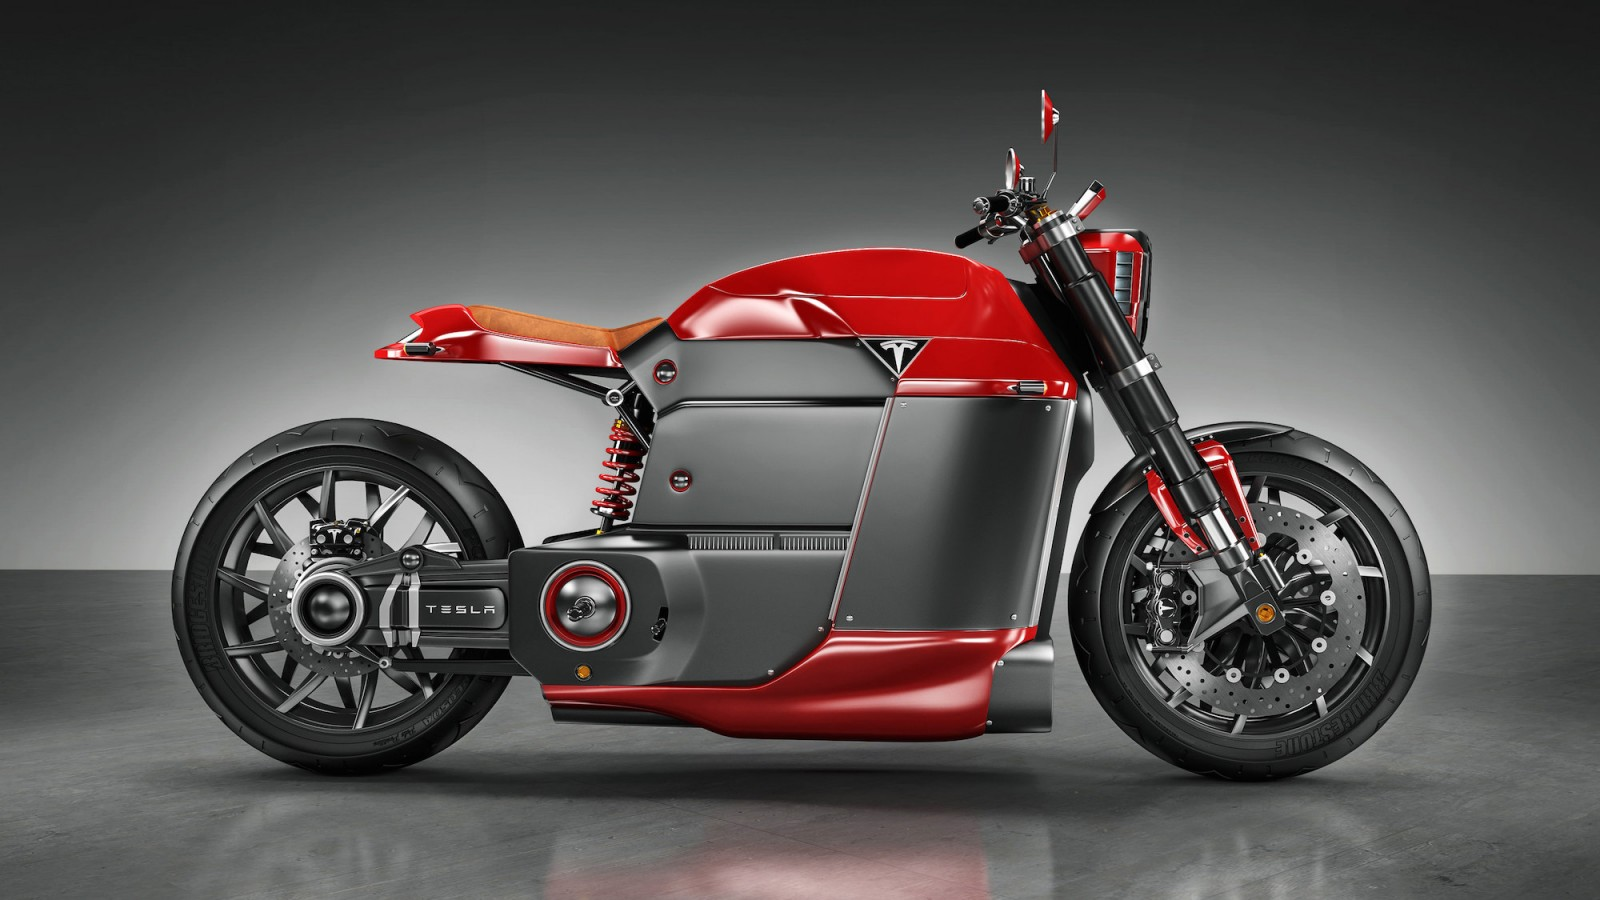 Does Tesla Have Plans to Produce Electric Motorcycles?